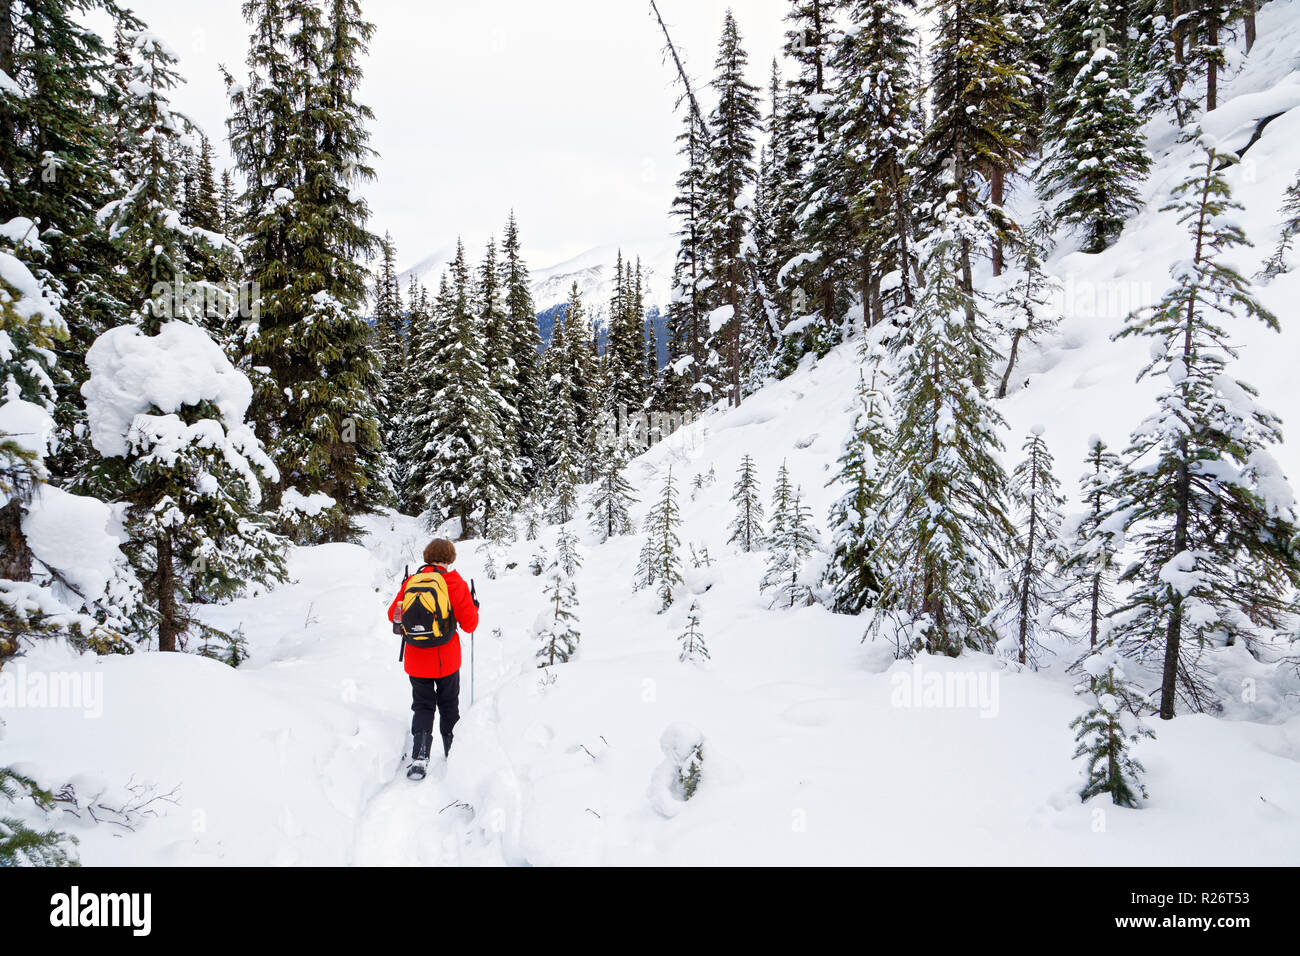 42,755.09678 woman person cold winter hiking Upper Moose Lake Trail, Jasper Park, day packing hiker in snowy winter conifer forest with hills, hilly - Stock Image